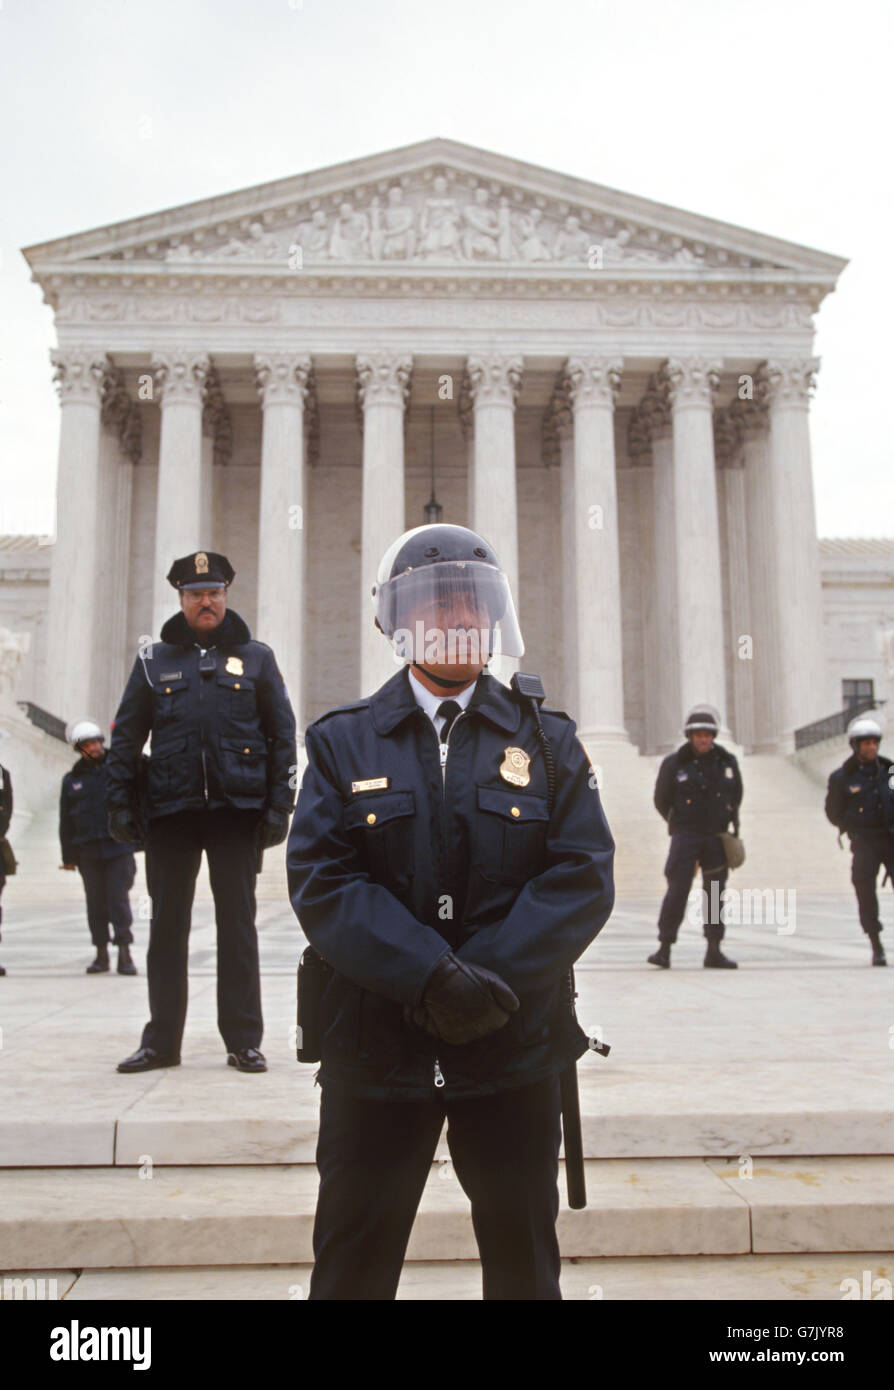 Police wearing riot helmets stand guard in front of the U.S Supreme Court building on the anniversary of the abortion - Stock Image